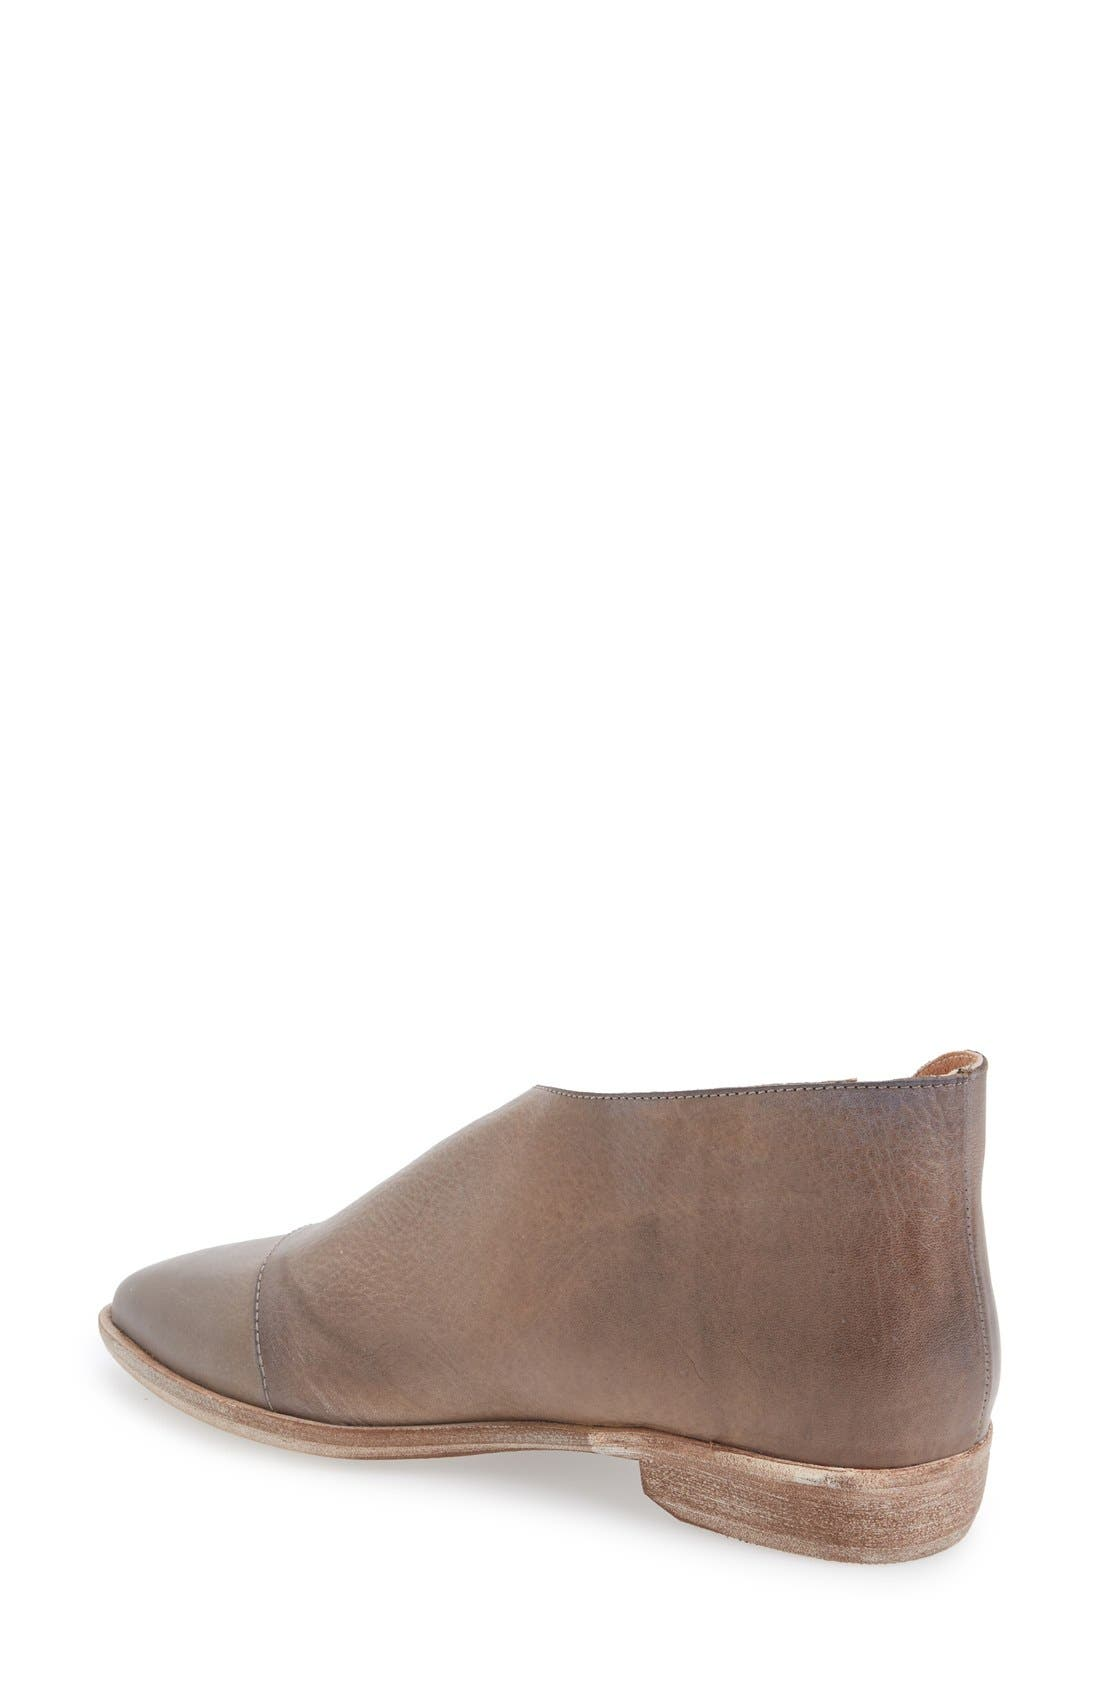 FREE PEOPLE, 'Royale' Pointy Toe Flat, Alternate thumbnail 4, color, GREY LEATHER